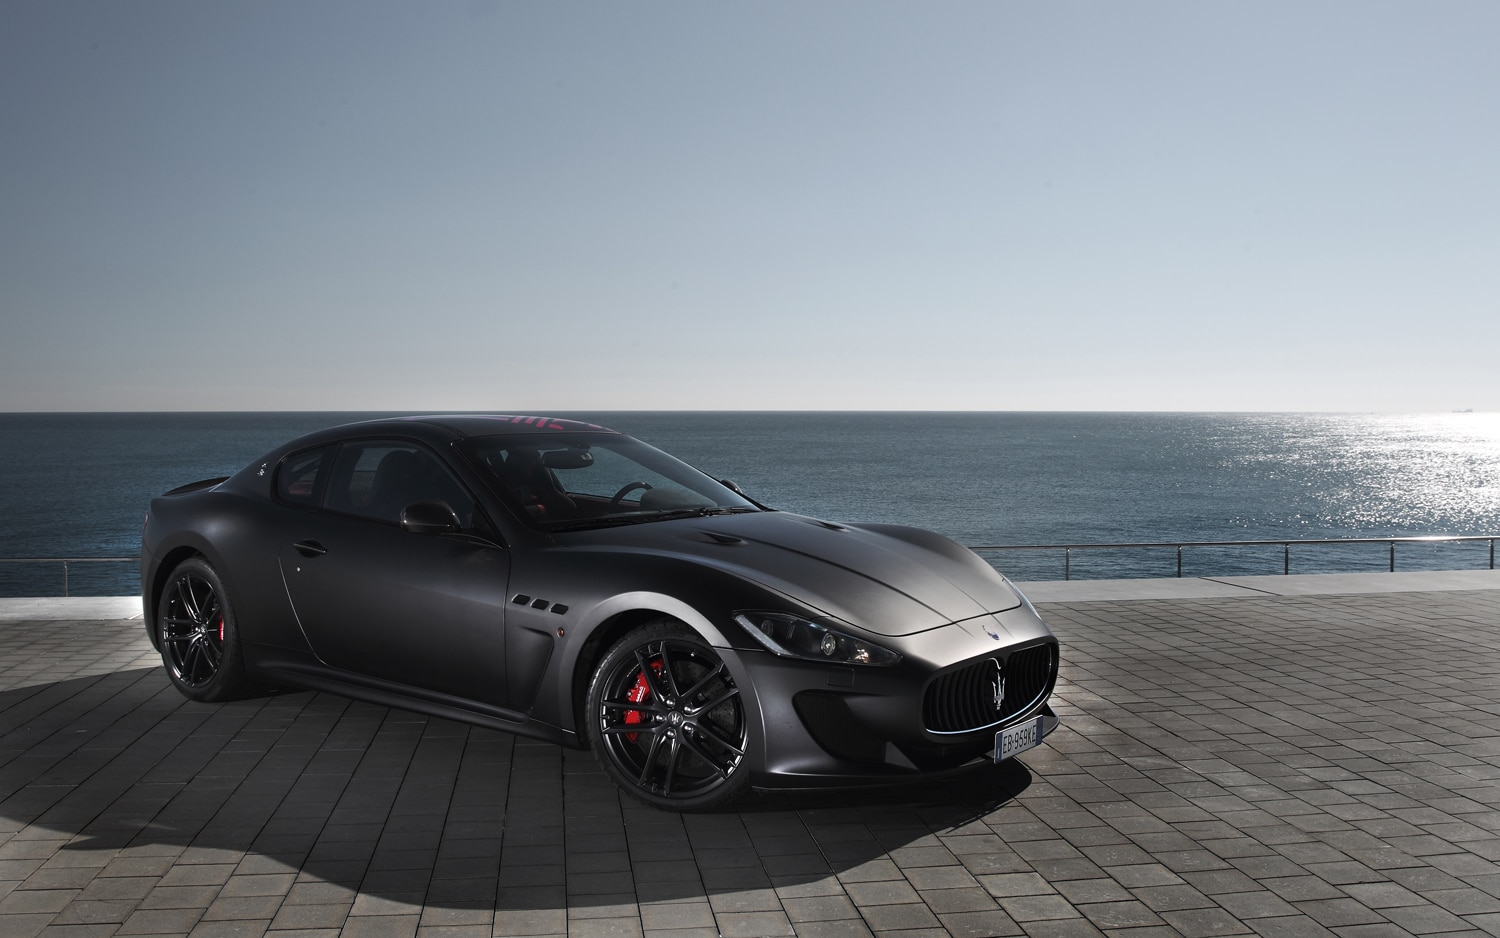 https://st.automobilemag.com/uploads/sites/10/2015/09/2012-maserati-granturismo-MC-stradale-front-three-quarters-2.jpg